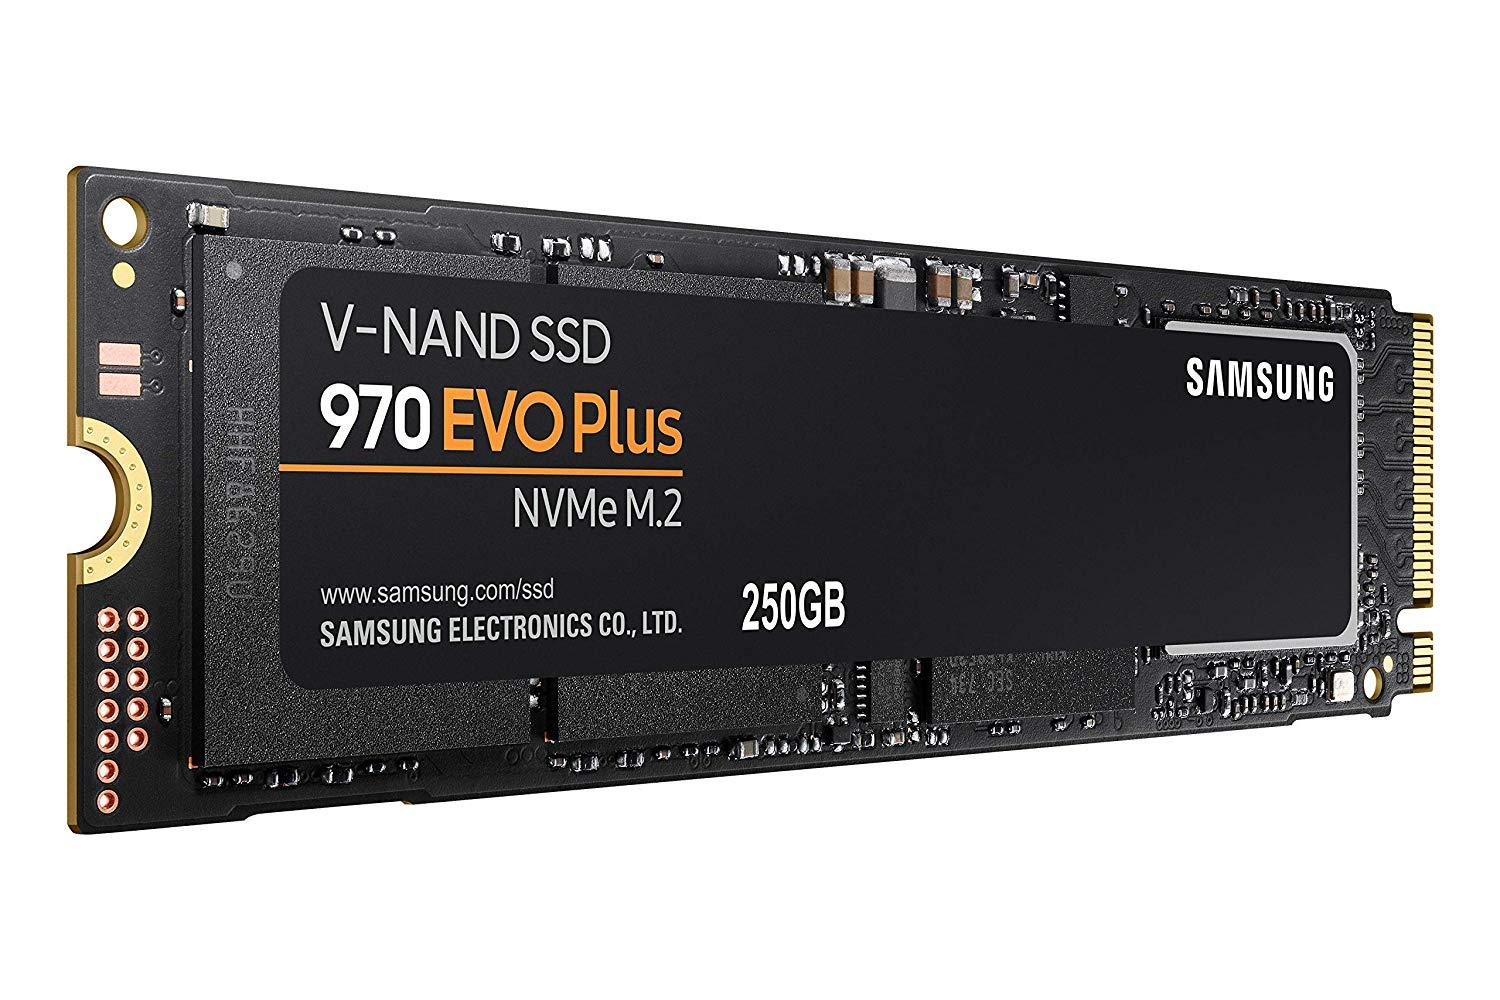 Solid State Drive (SSD) SAMSUNG 970 EVO Plus, 250GB, M.2 Type 2280, MZ-V7S250BW-4